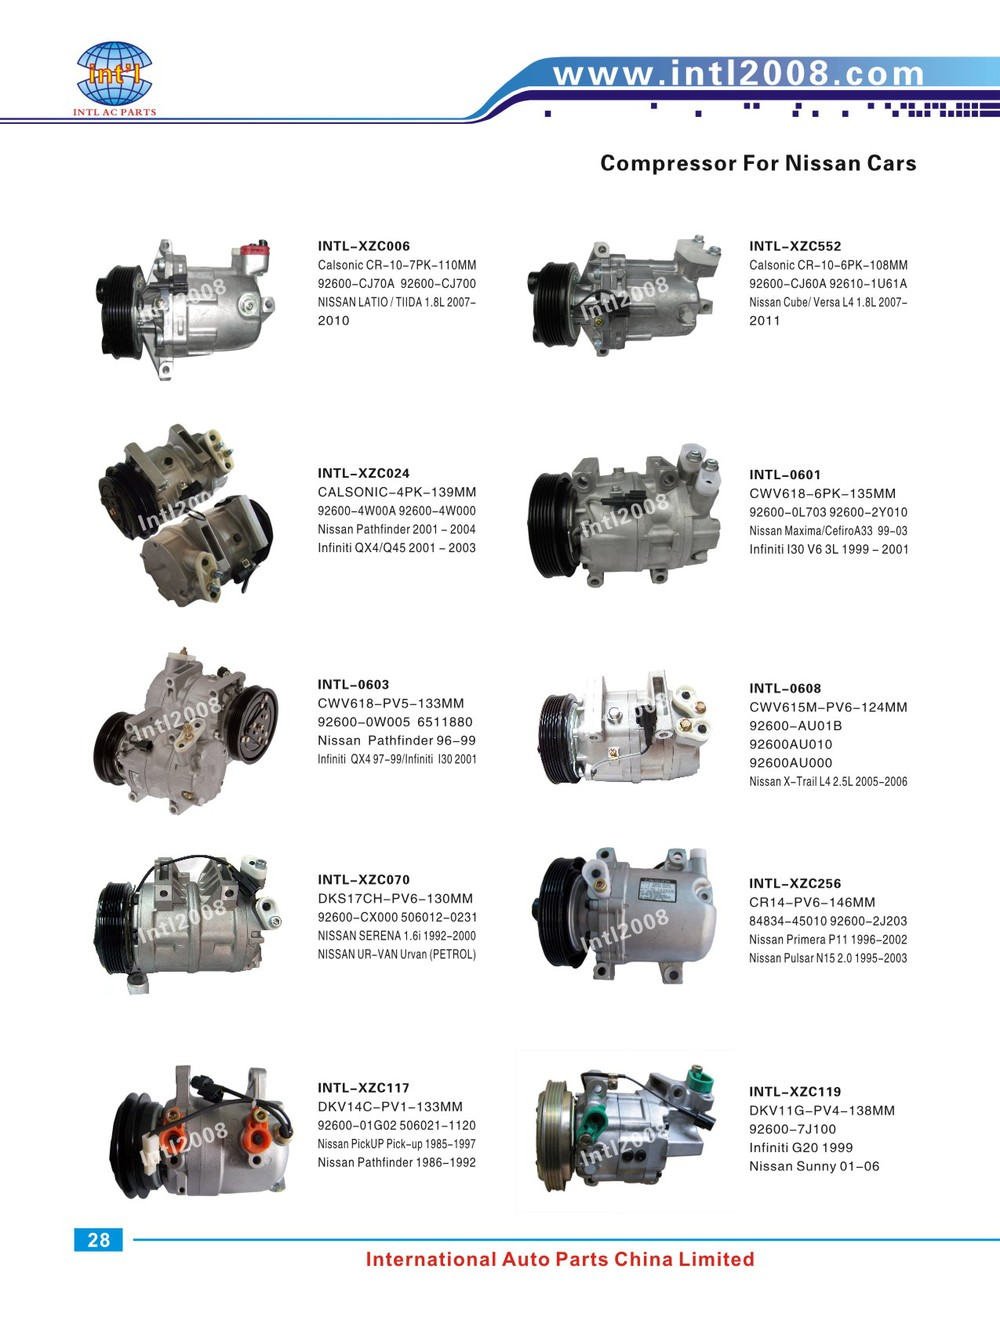 Air Conditioning System Nissan 2005 International Wiring Diagram Conditioner Images Of